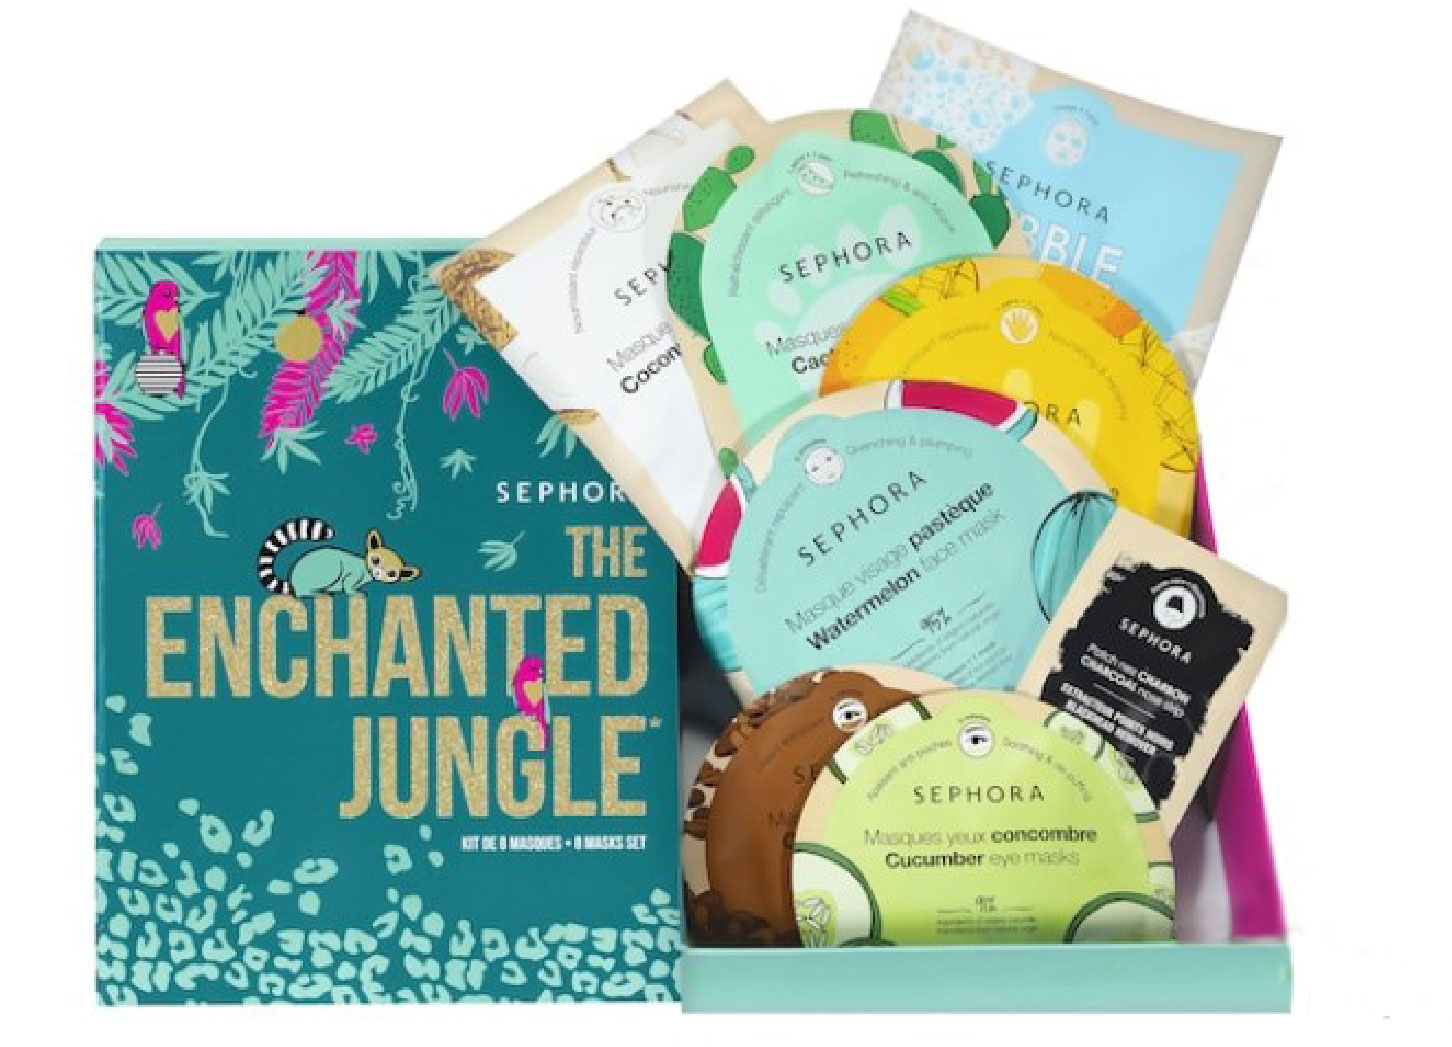 Sephora Enchanted Jungle skincare mask box set